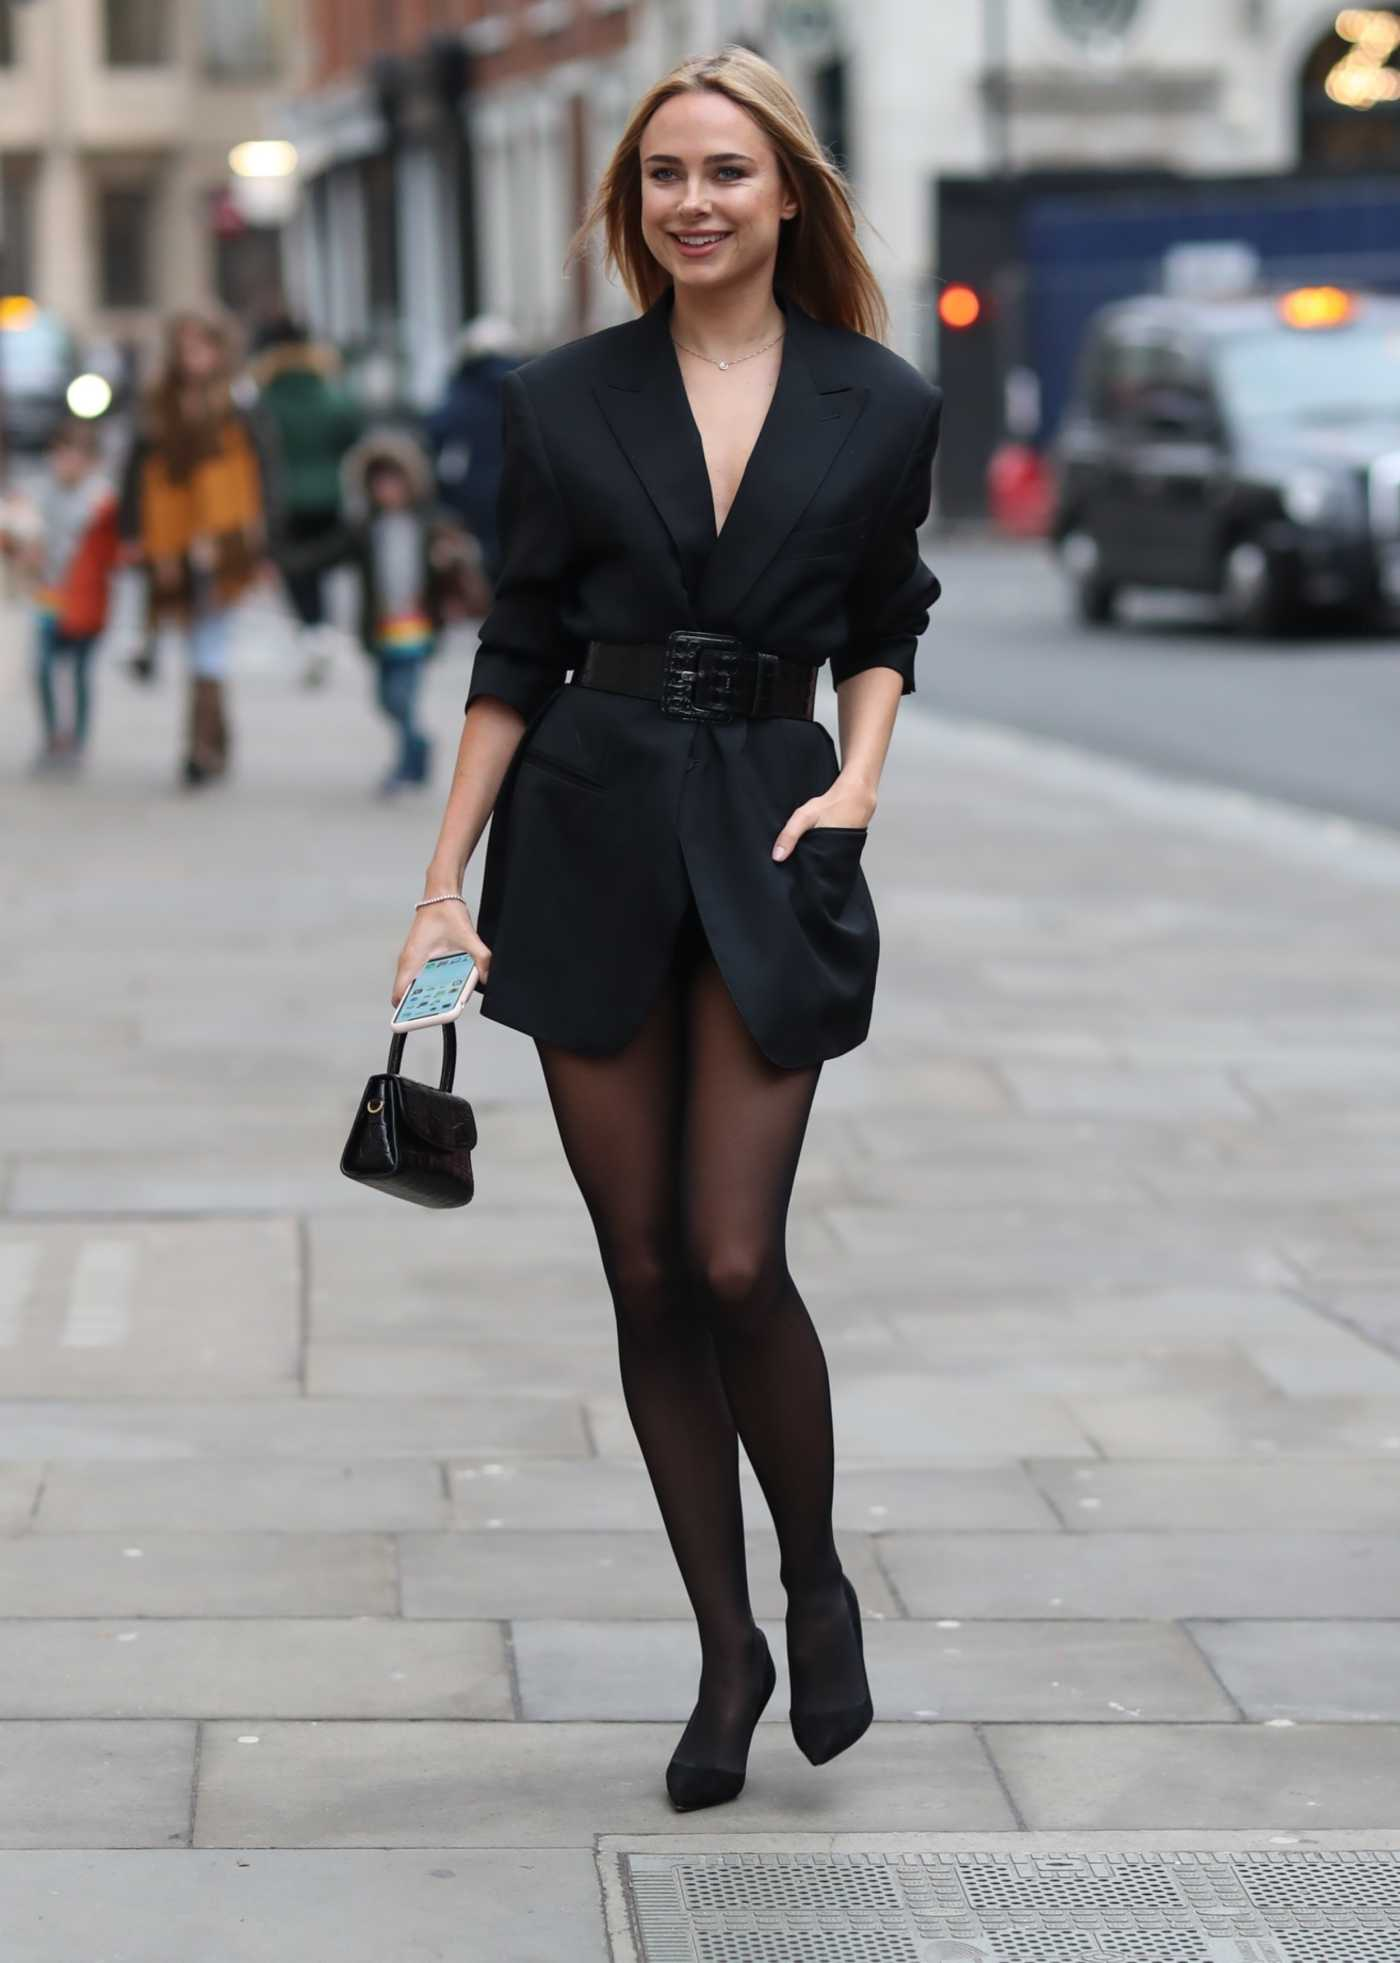 Kimberley Garner in a Black Blazer Was Seen Out in London 02/15/2020